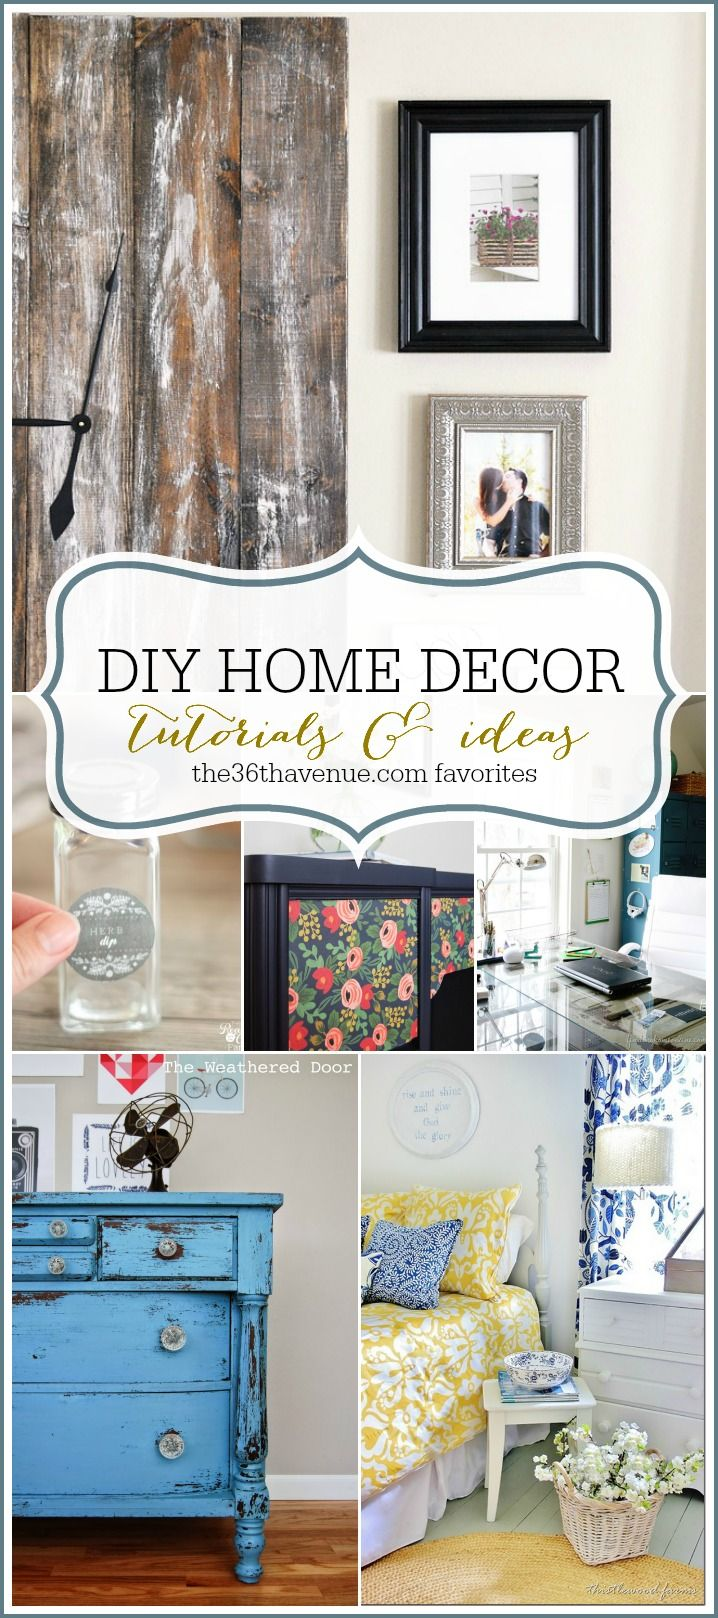 Decor Hacks Diy Home Decor Propfunds Com Home Home Decorators Catalog Best Ideas of Home Decor and Design [homedecoratorscatalog.us]